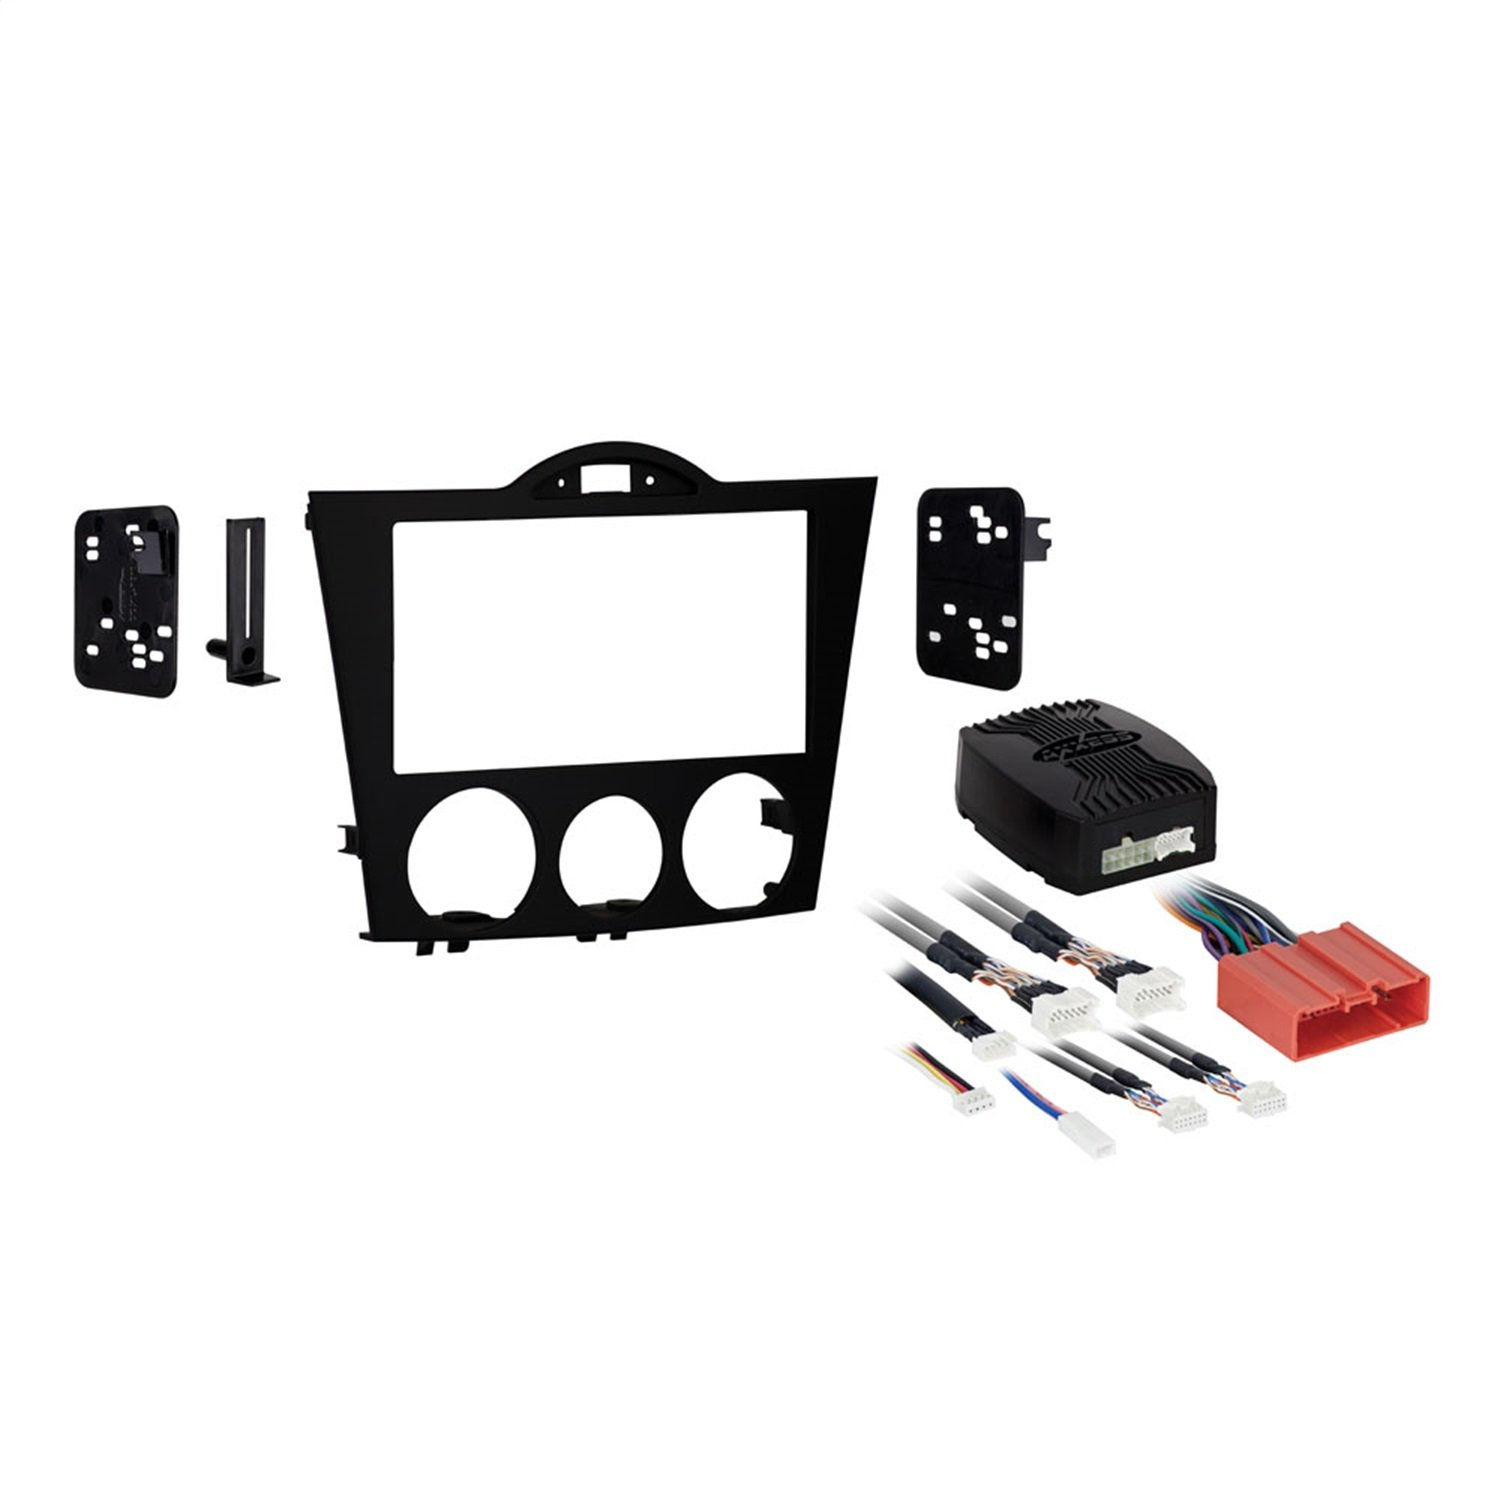 METRA 95-7510 Double DIN Installation Kit for 2004-2008 Mazda RX-8 Vehicles, Black Metra Electronics Corporation